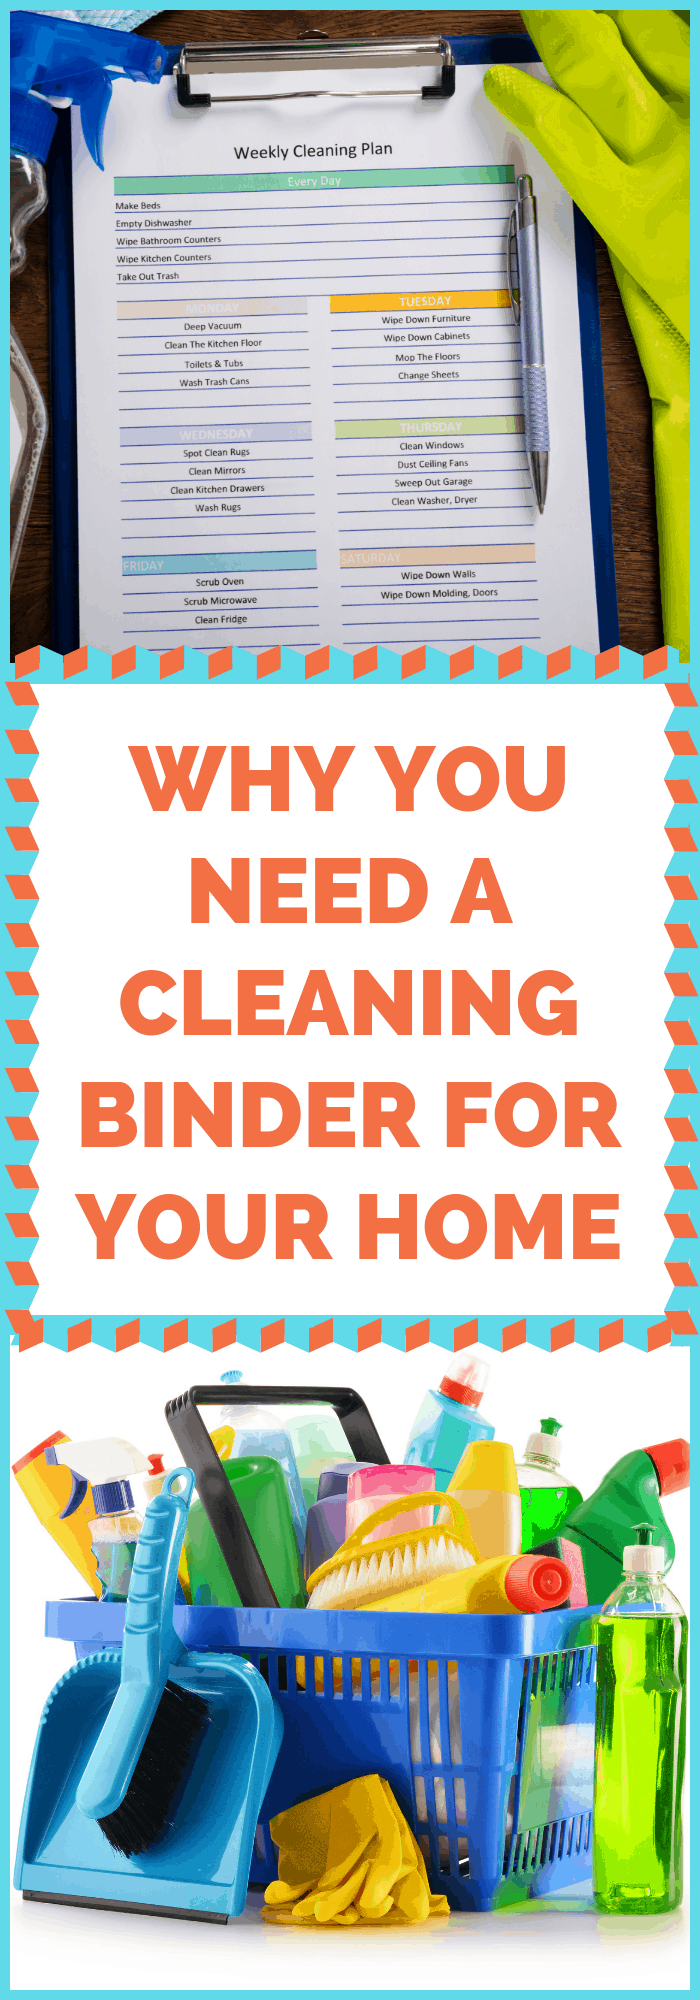 Why You Need a Cleaning Binder for Your Home